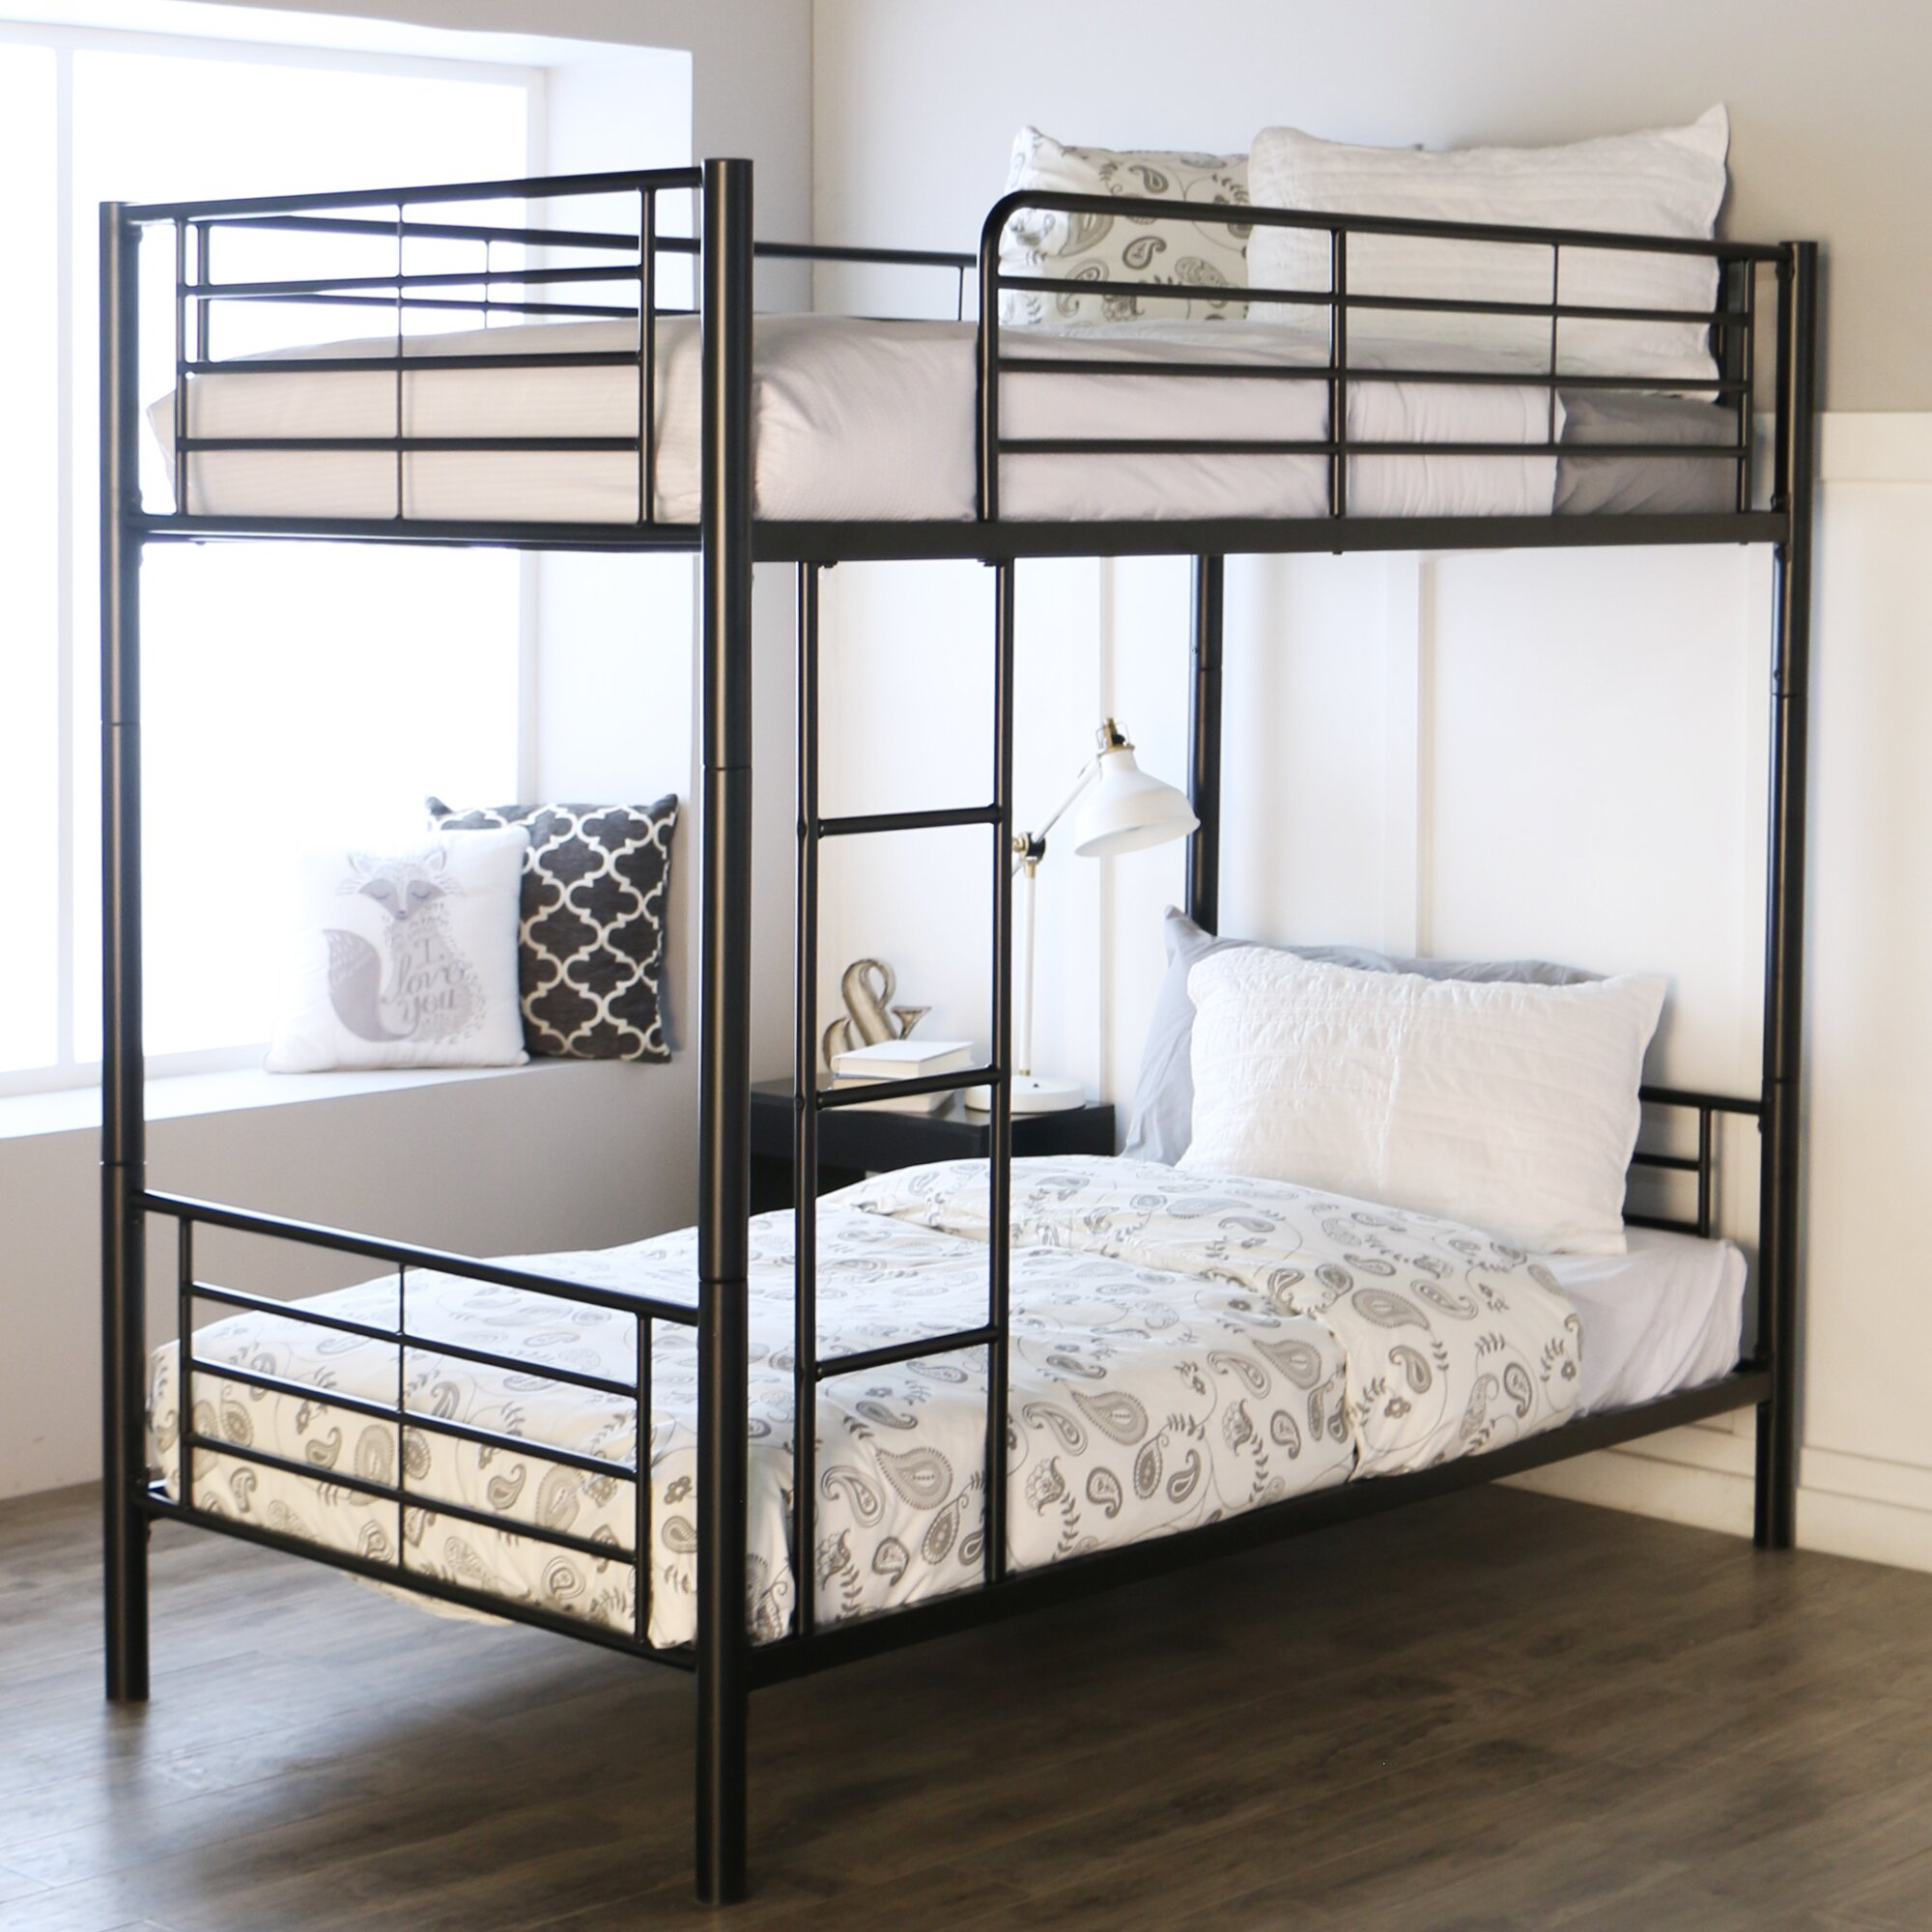 Viv rae malia twin bunk bed reviews wayfair for 2 twin beds for sale